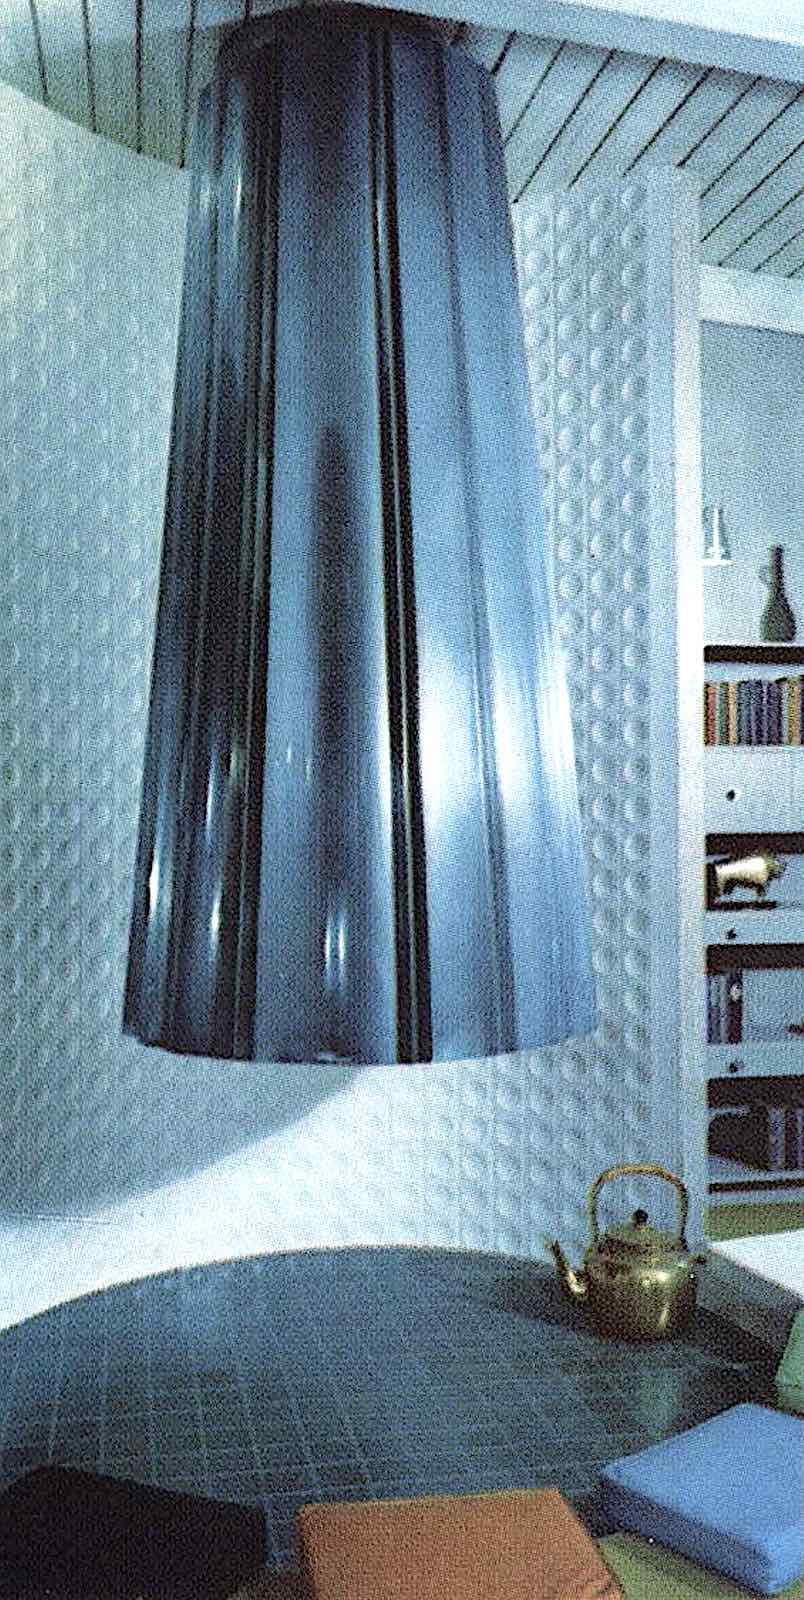 a 1961 entertaining and cooking vent in blue tile